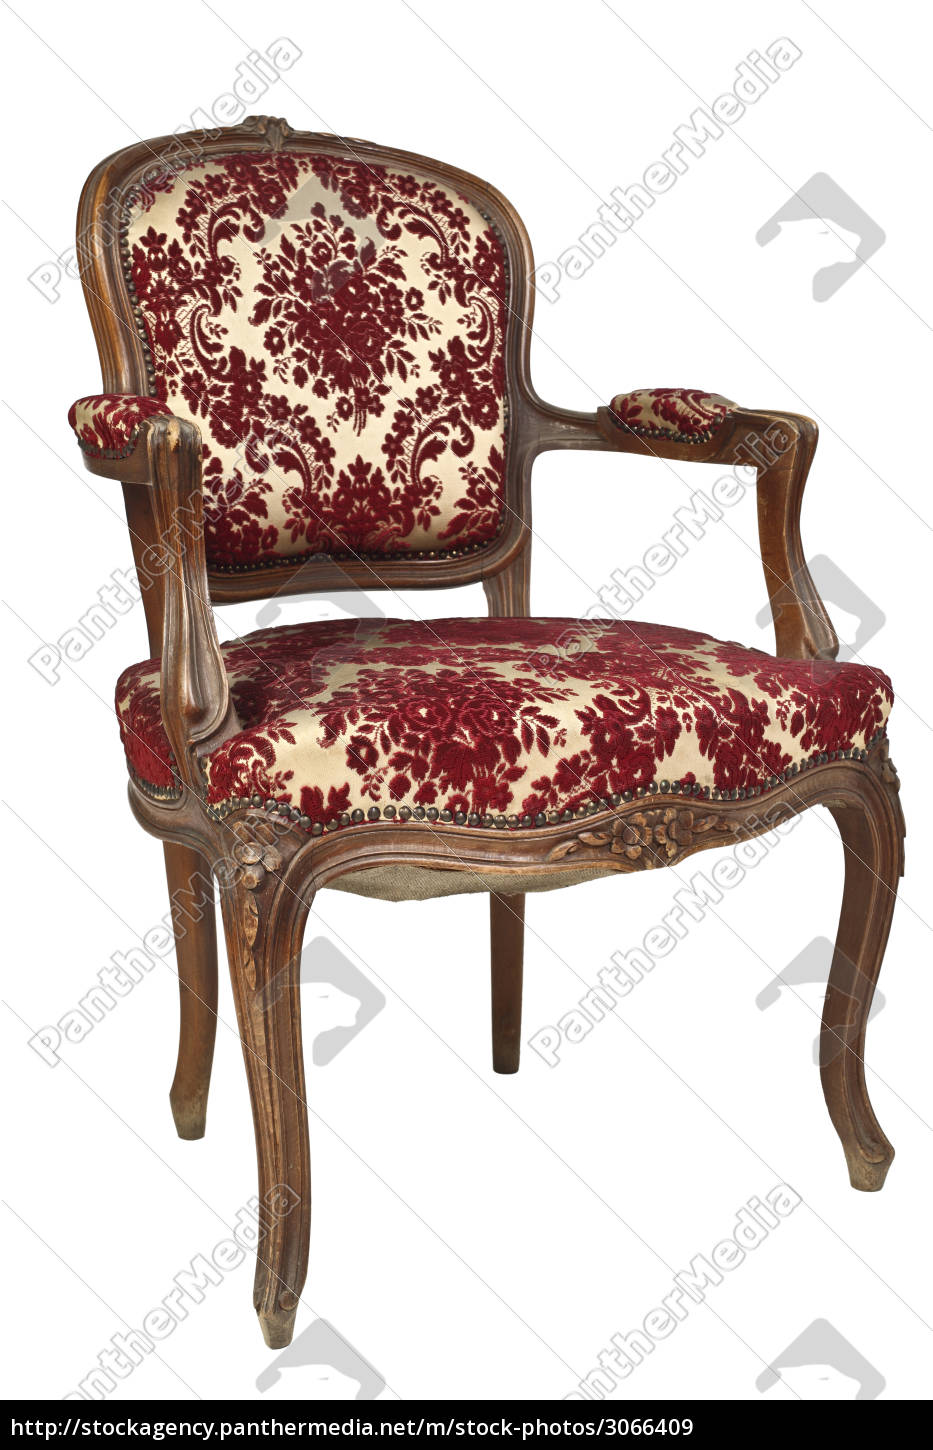 armchair, furniture, vintage, retro, old, chair - 3066409